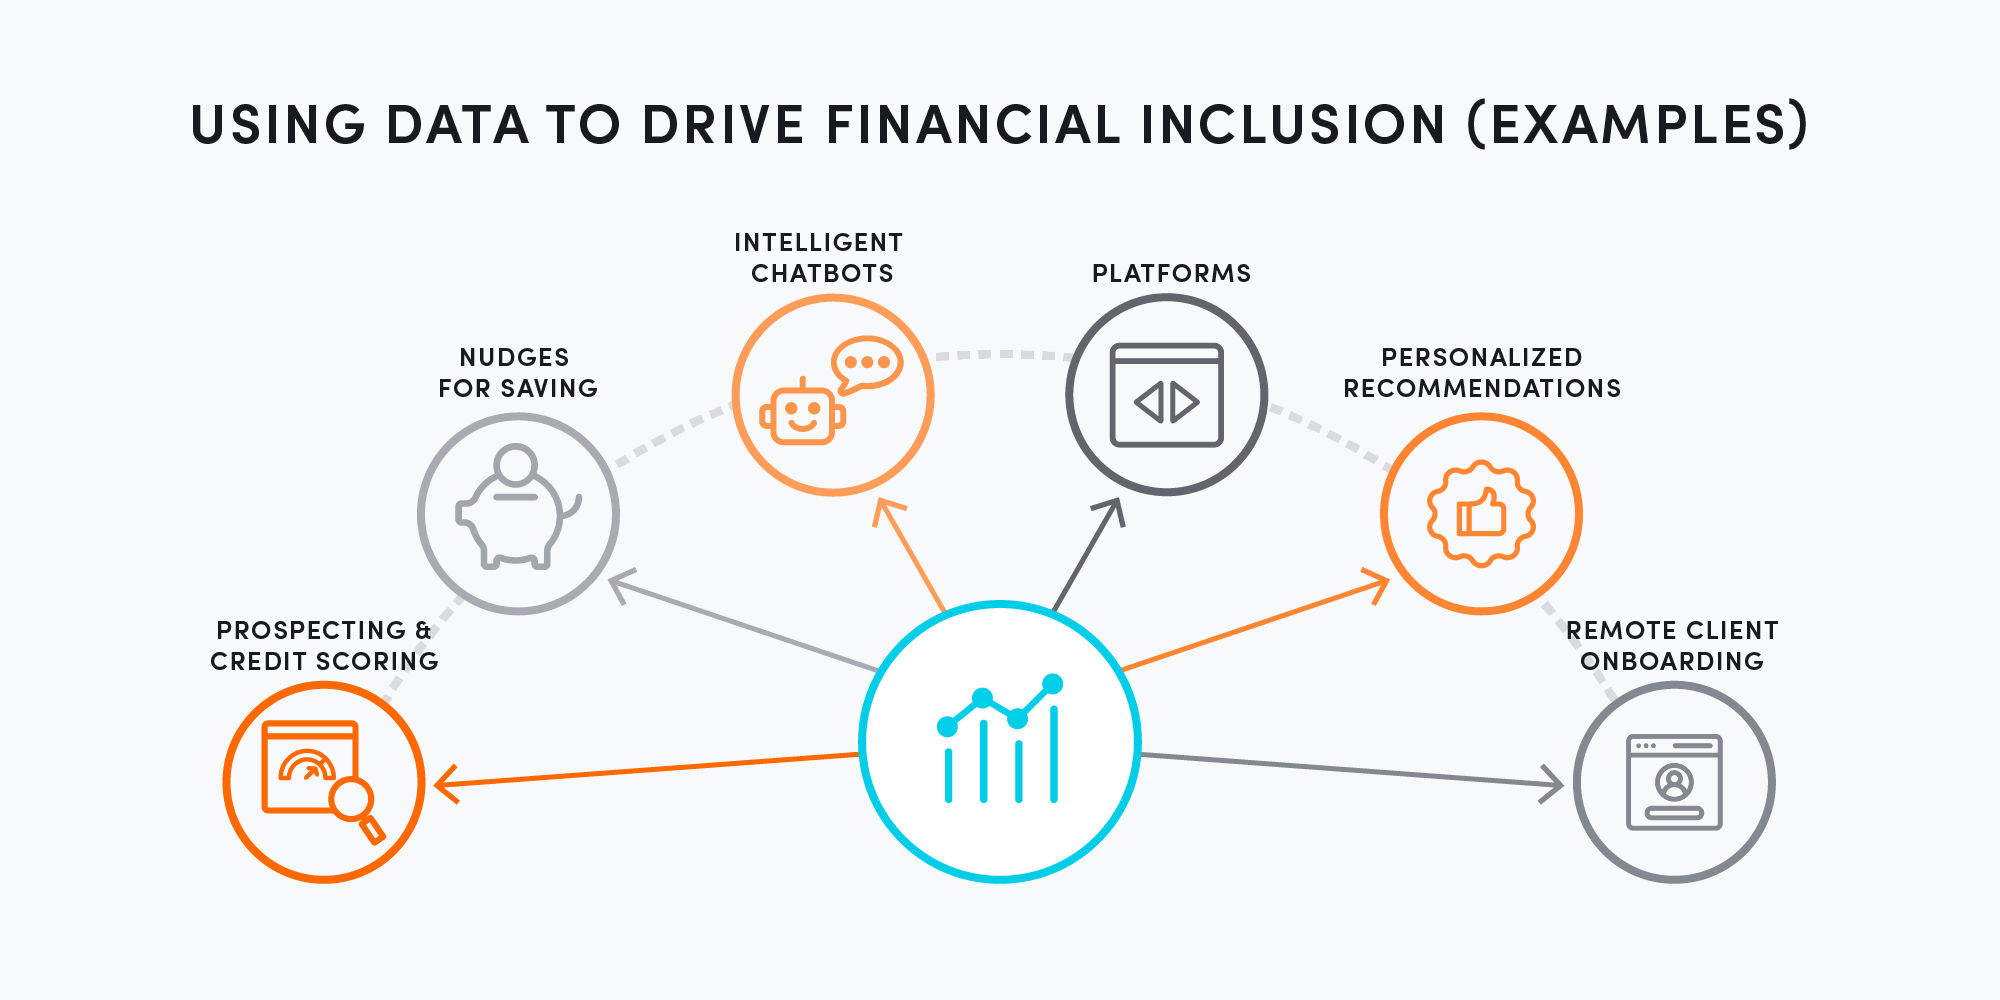 Using data to drive financial inclusion (examples)